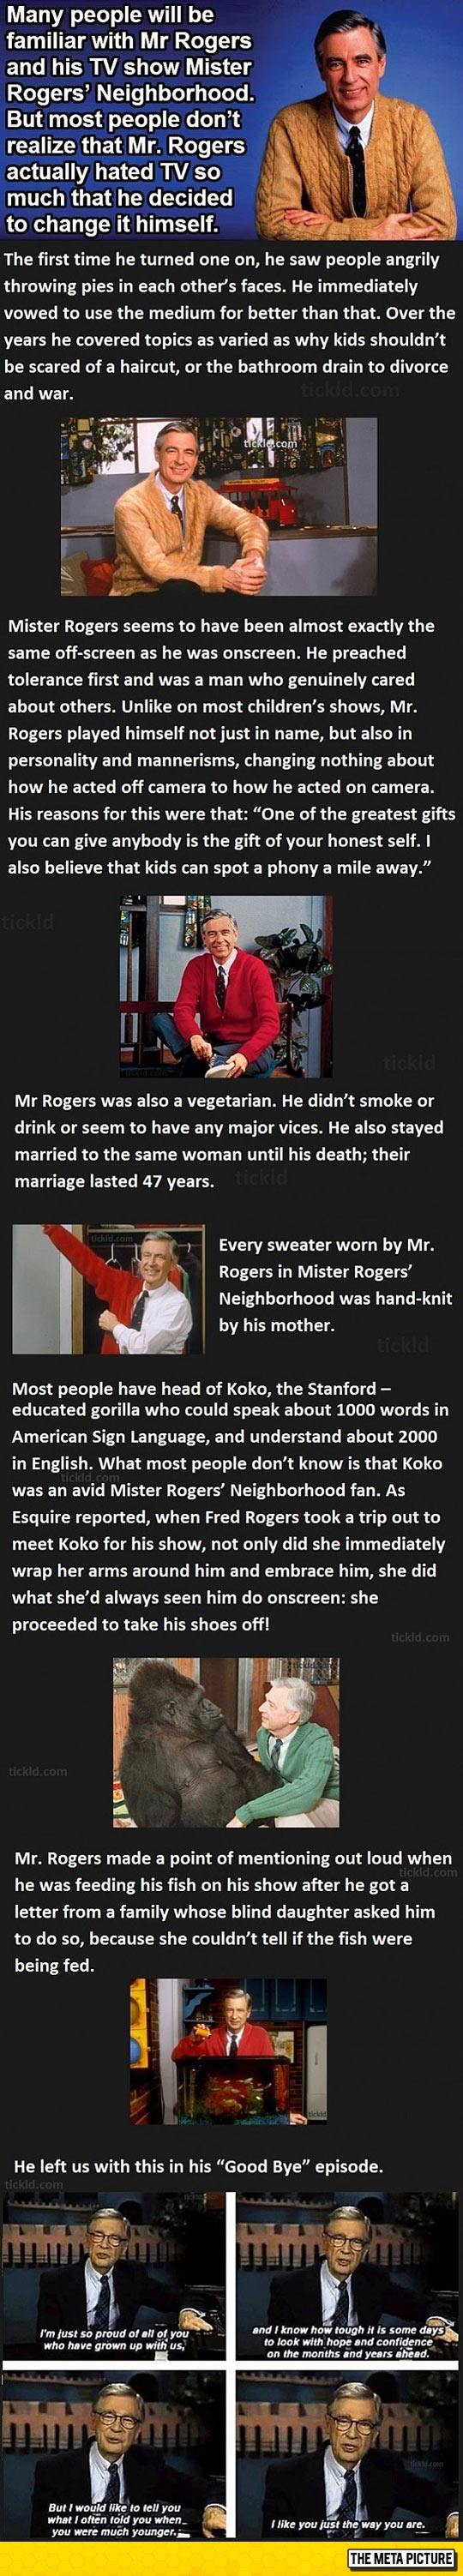 Things You Might Not Know About Mr. Rogers